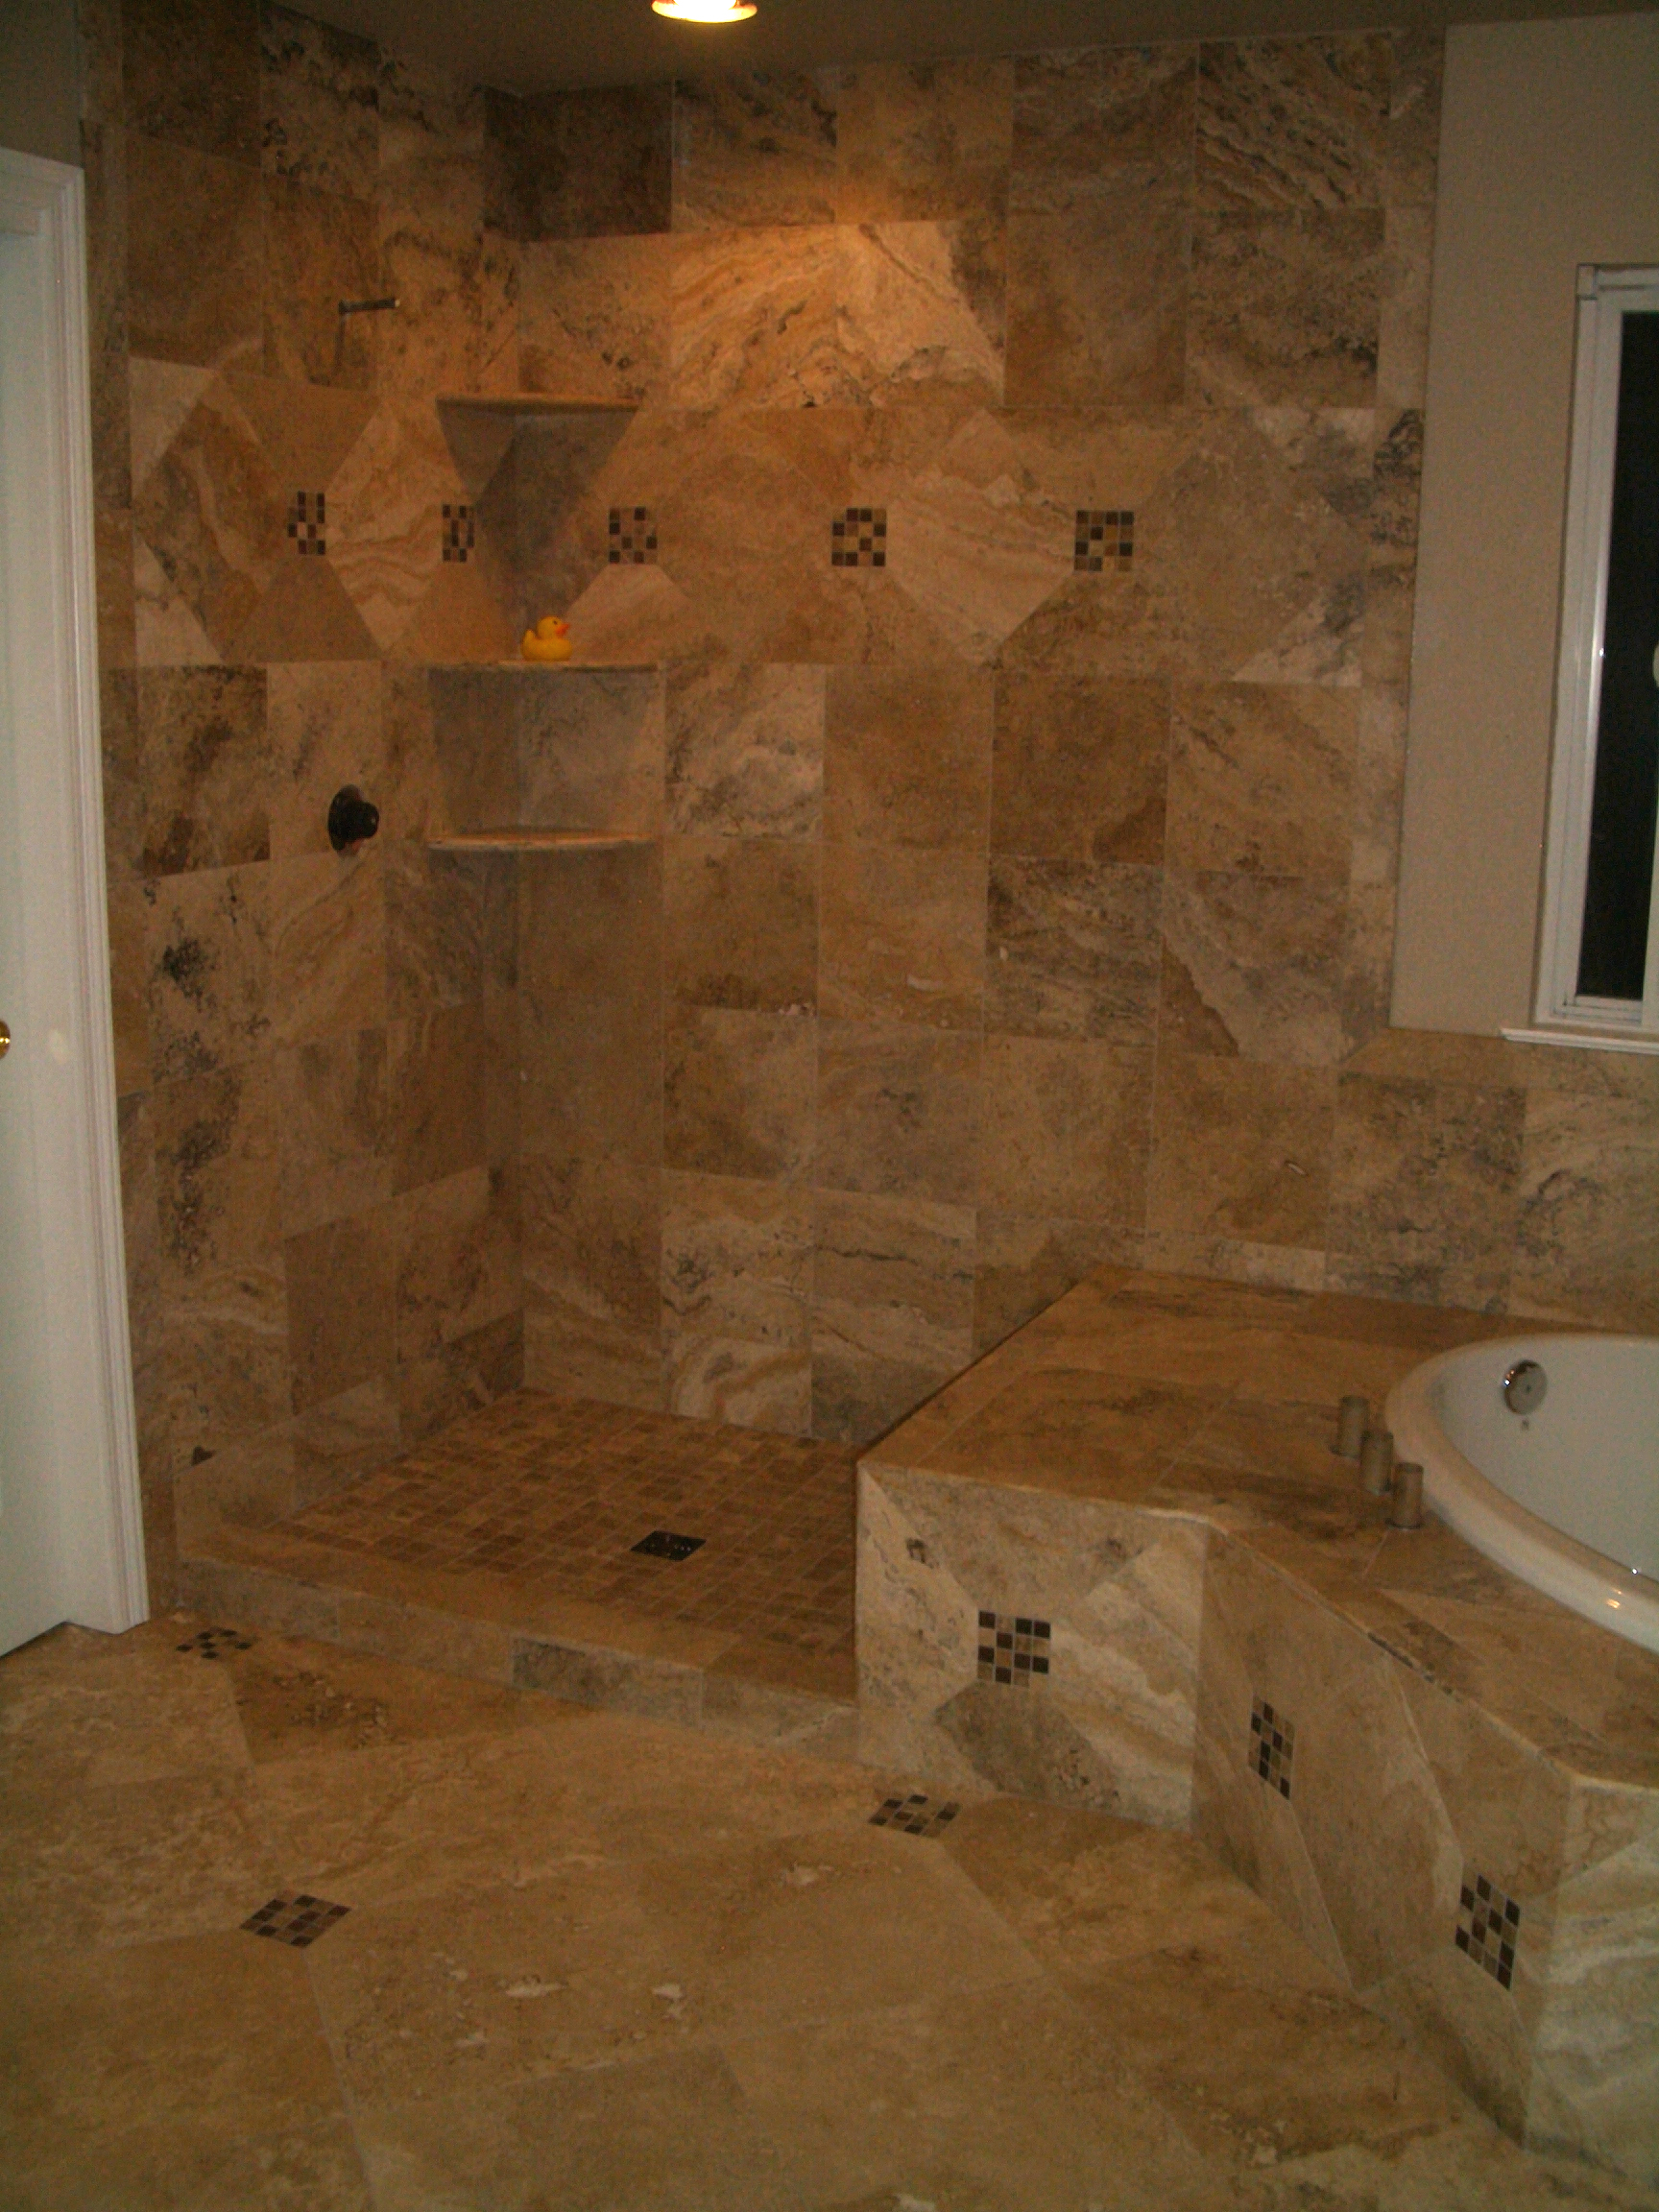 Images of tiled bathrooms